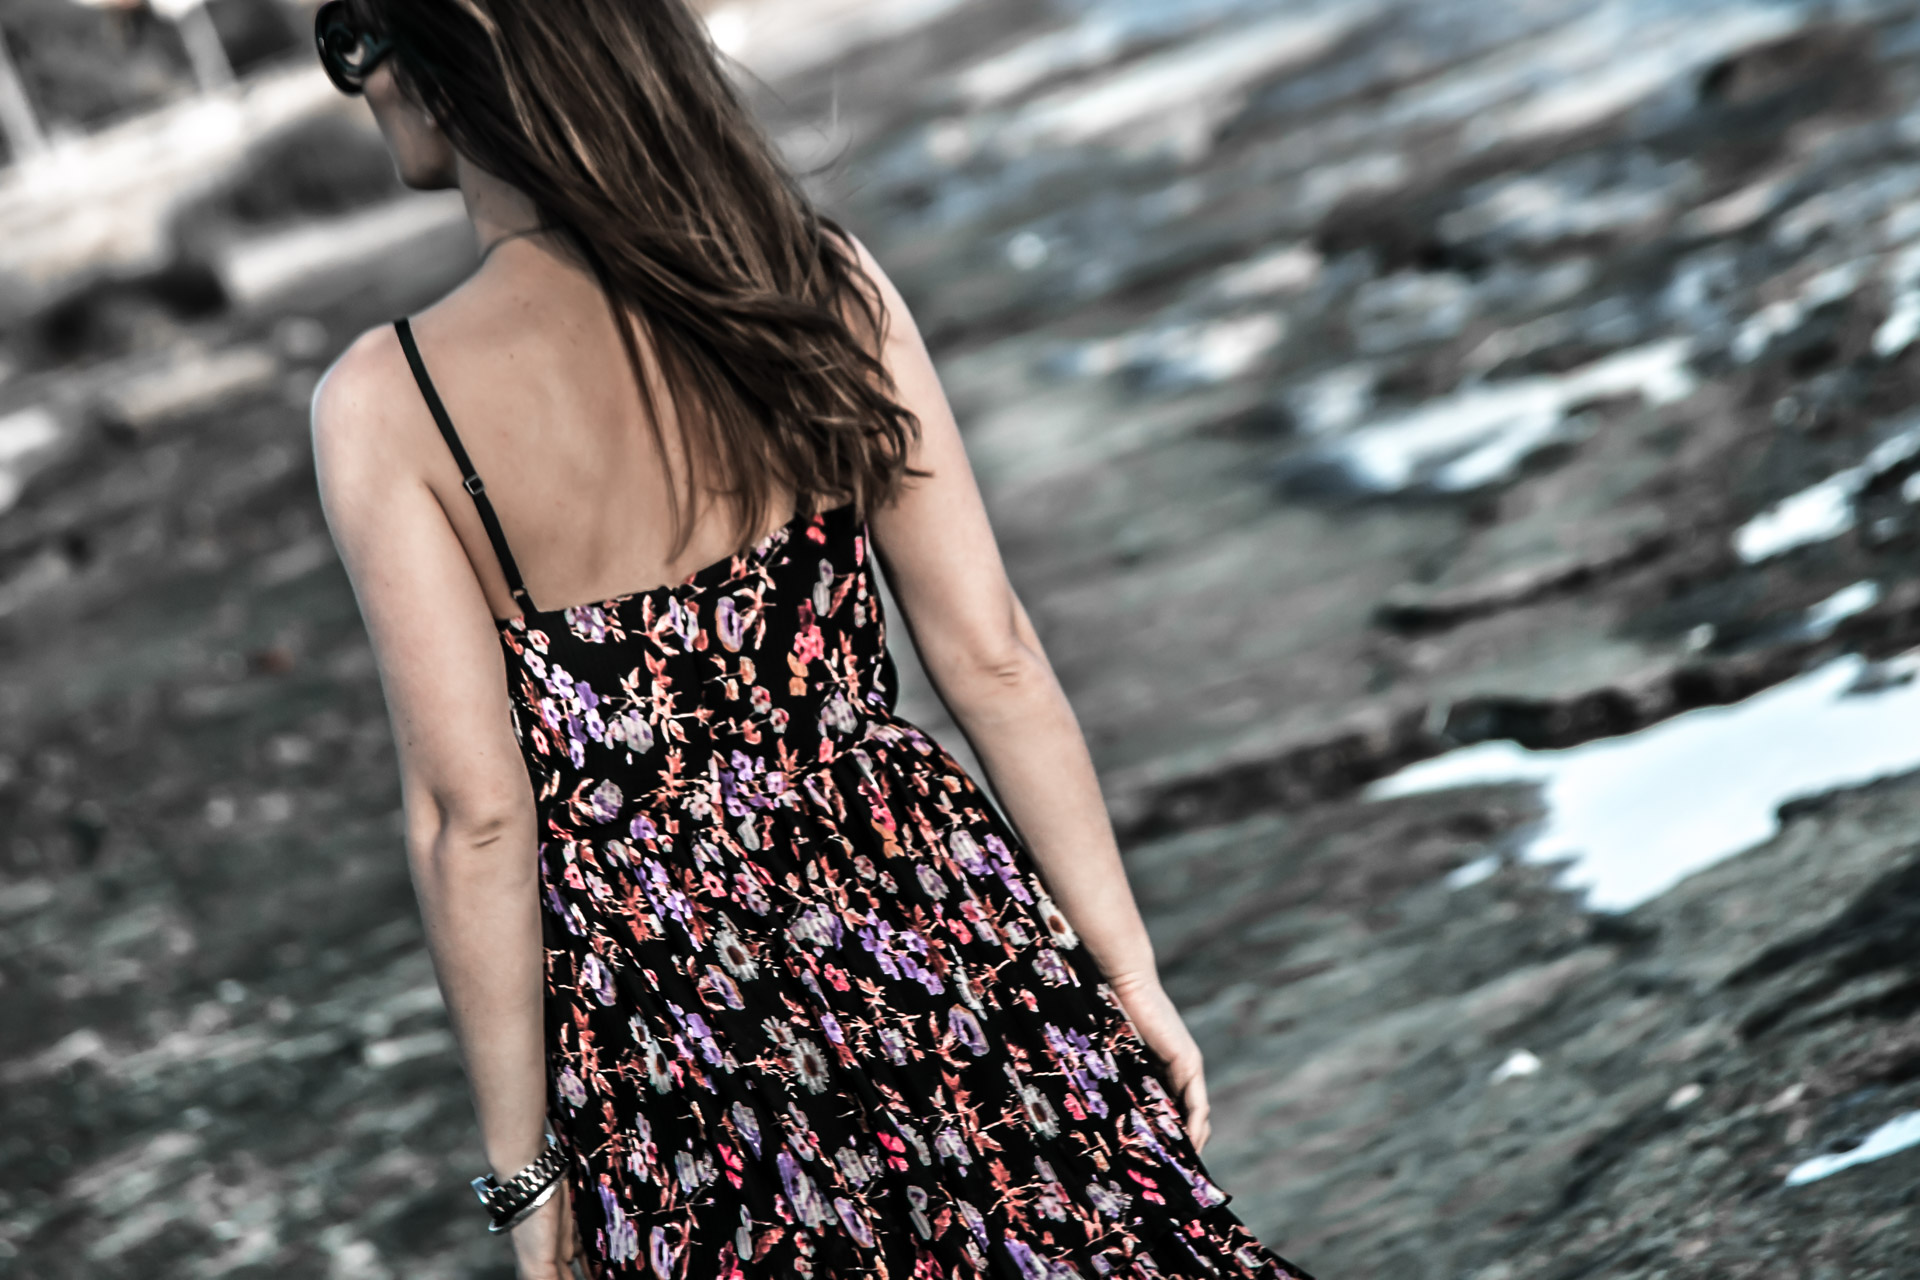 Thefashionblink : Toi&Moi floral dress